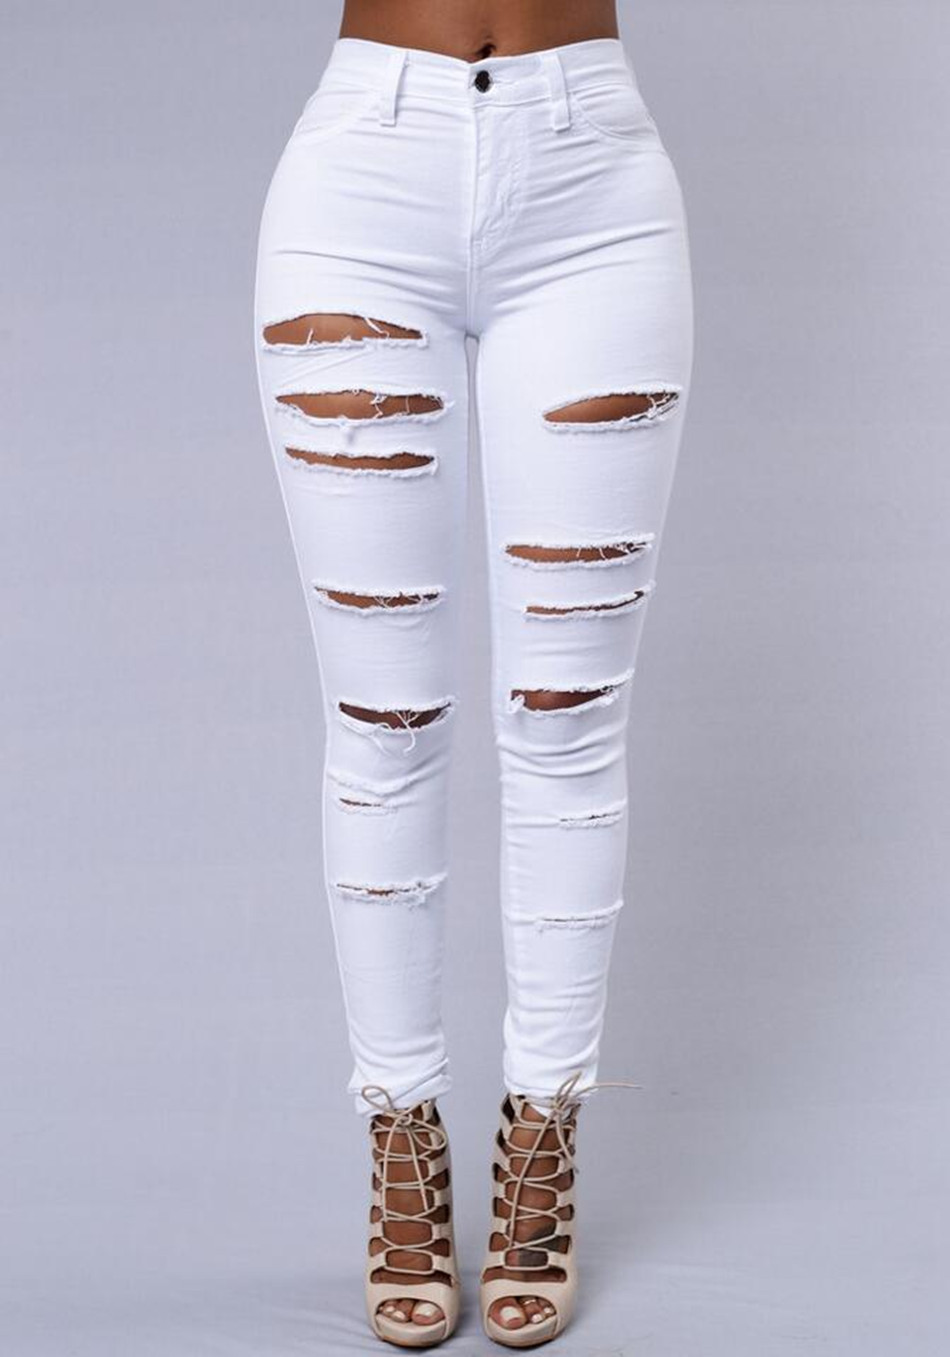 c363497e7f5 KL920 Fashion white high waist ripped jeans for women hole skinny black denim  trousers pantalon femme